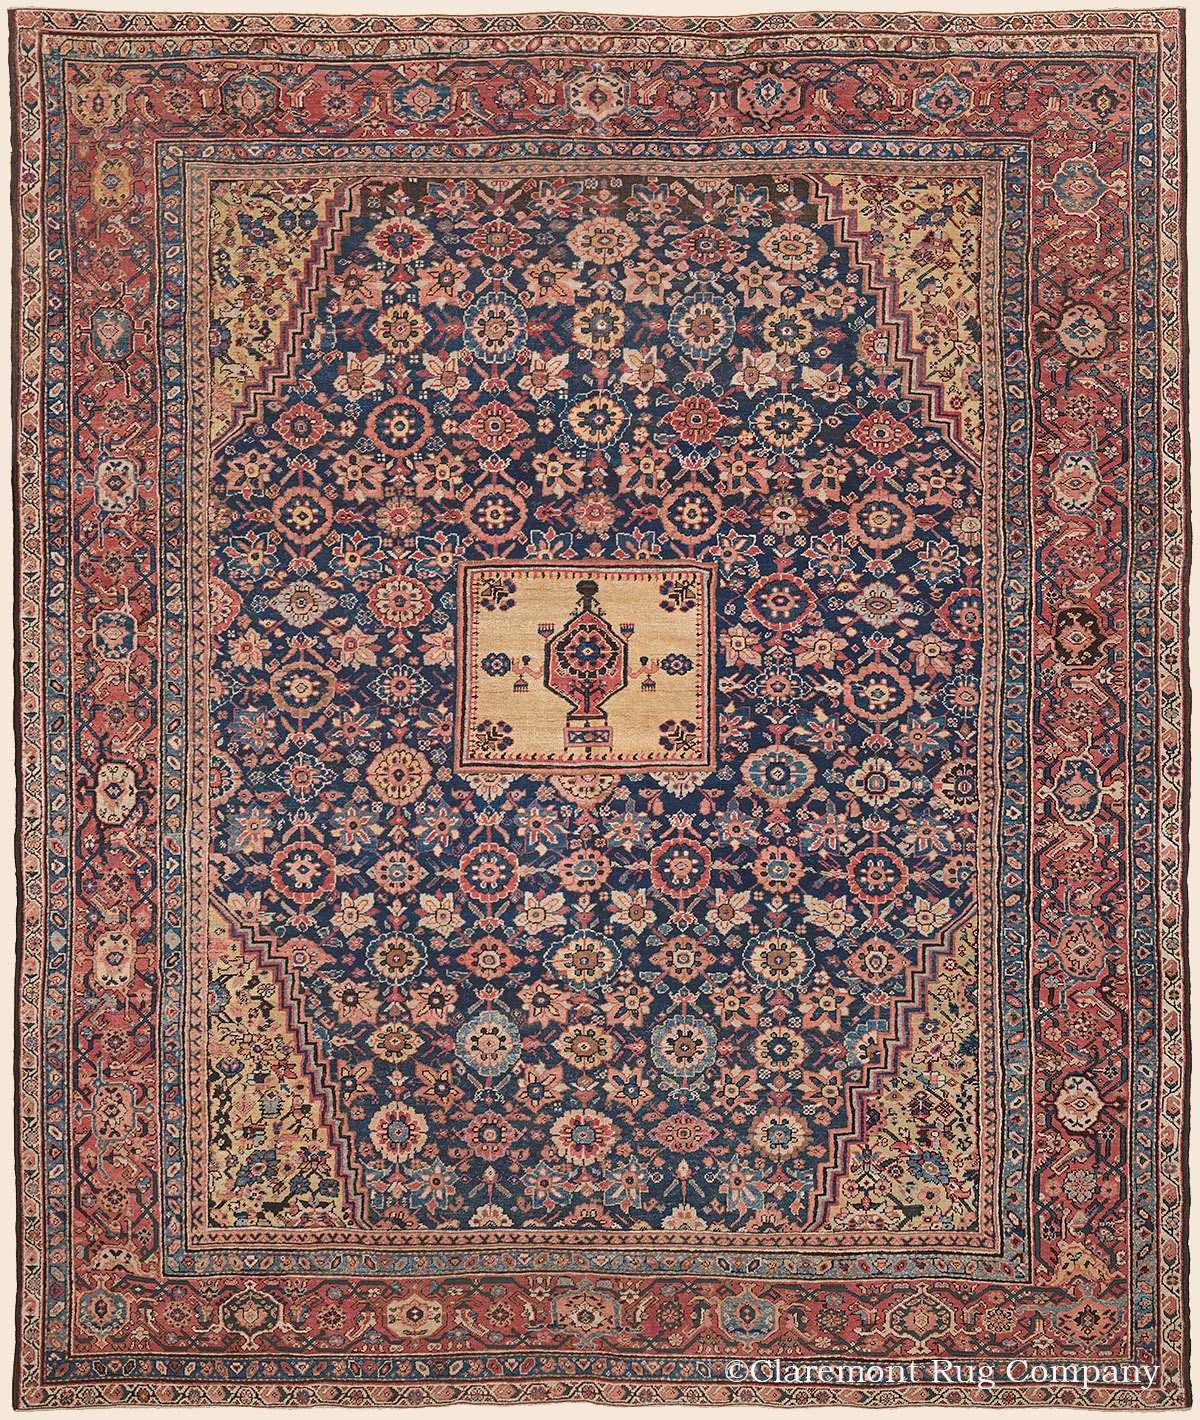 Antique Oriental Rugs Com: SULTANABAD, West Central Persian Antique Rug